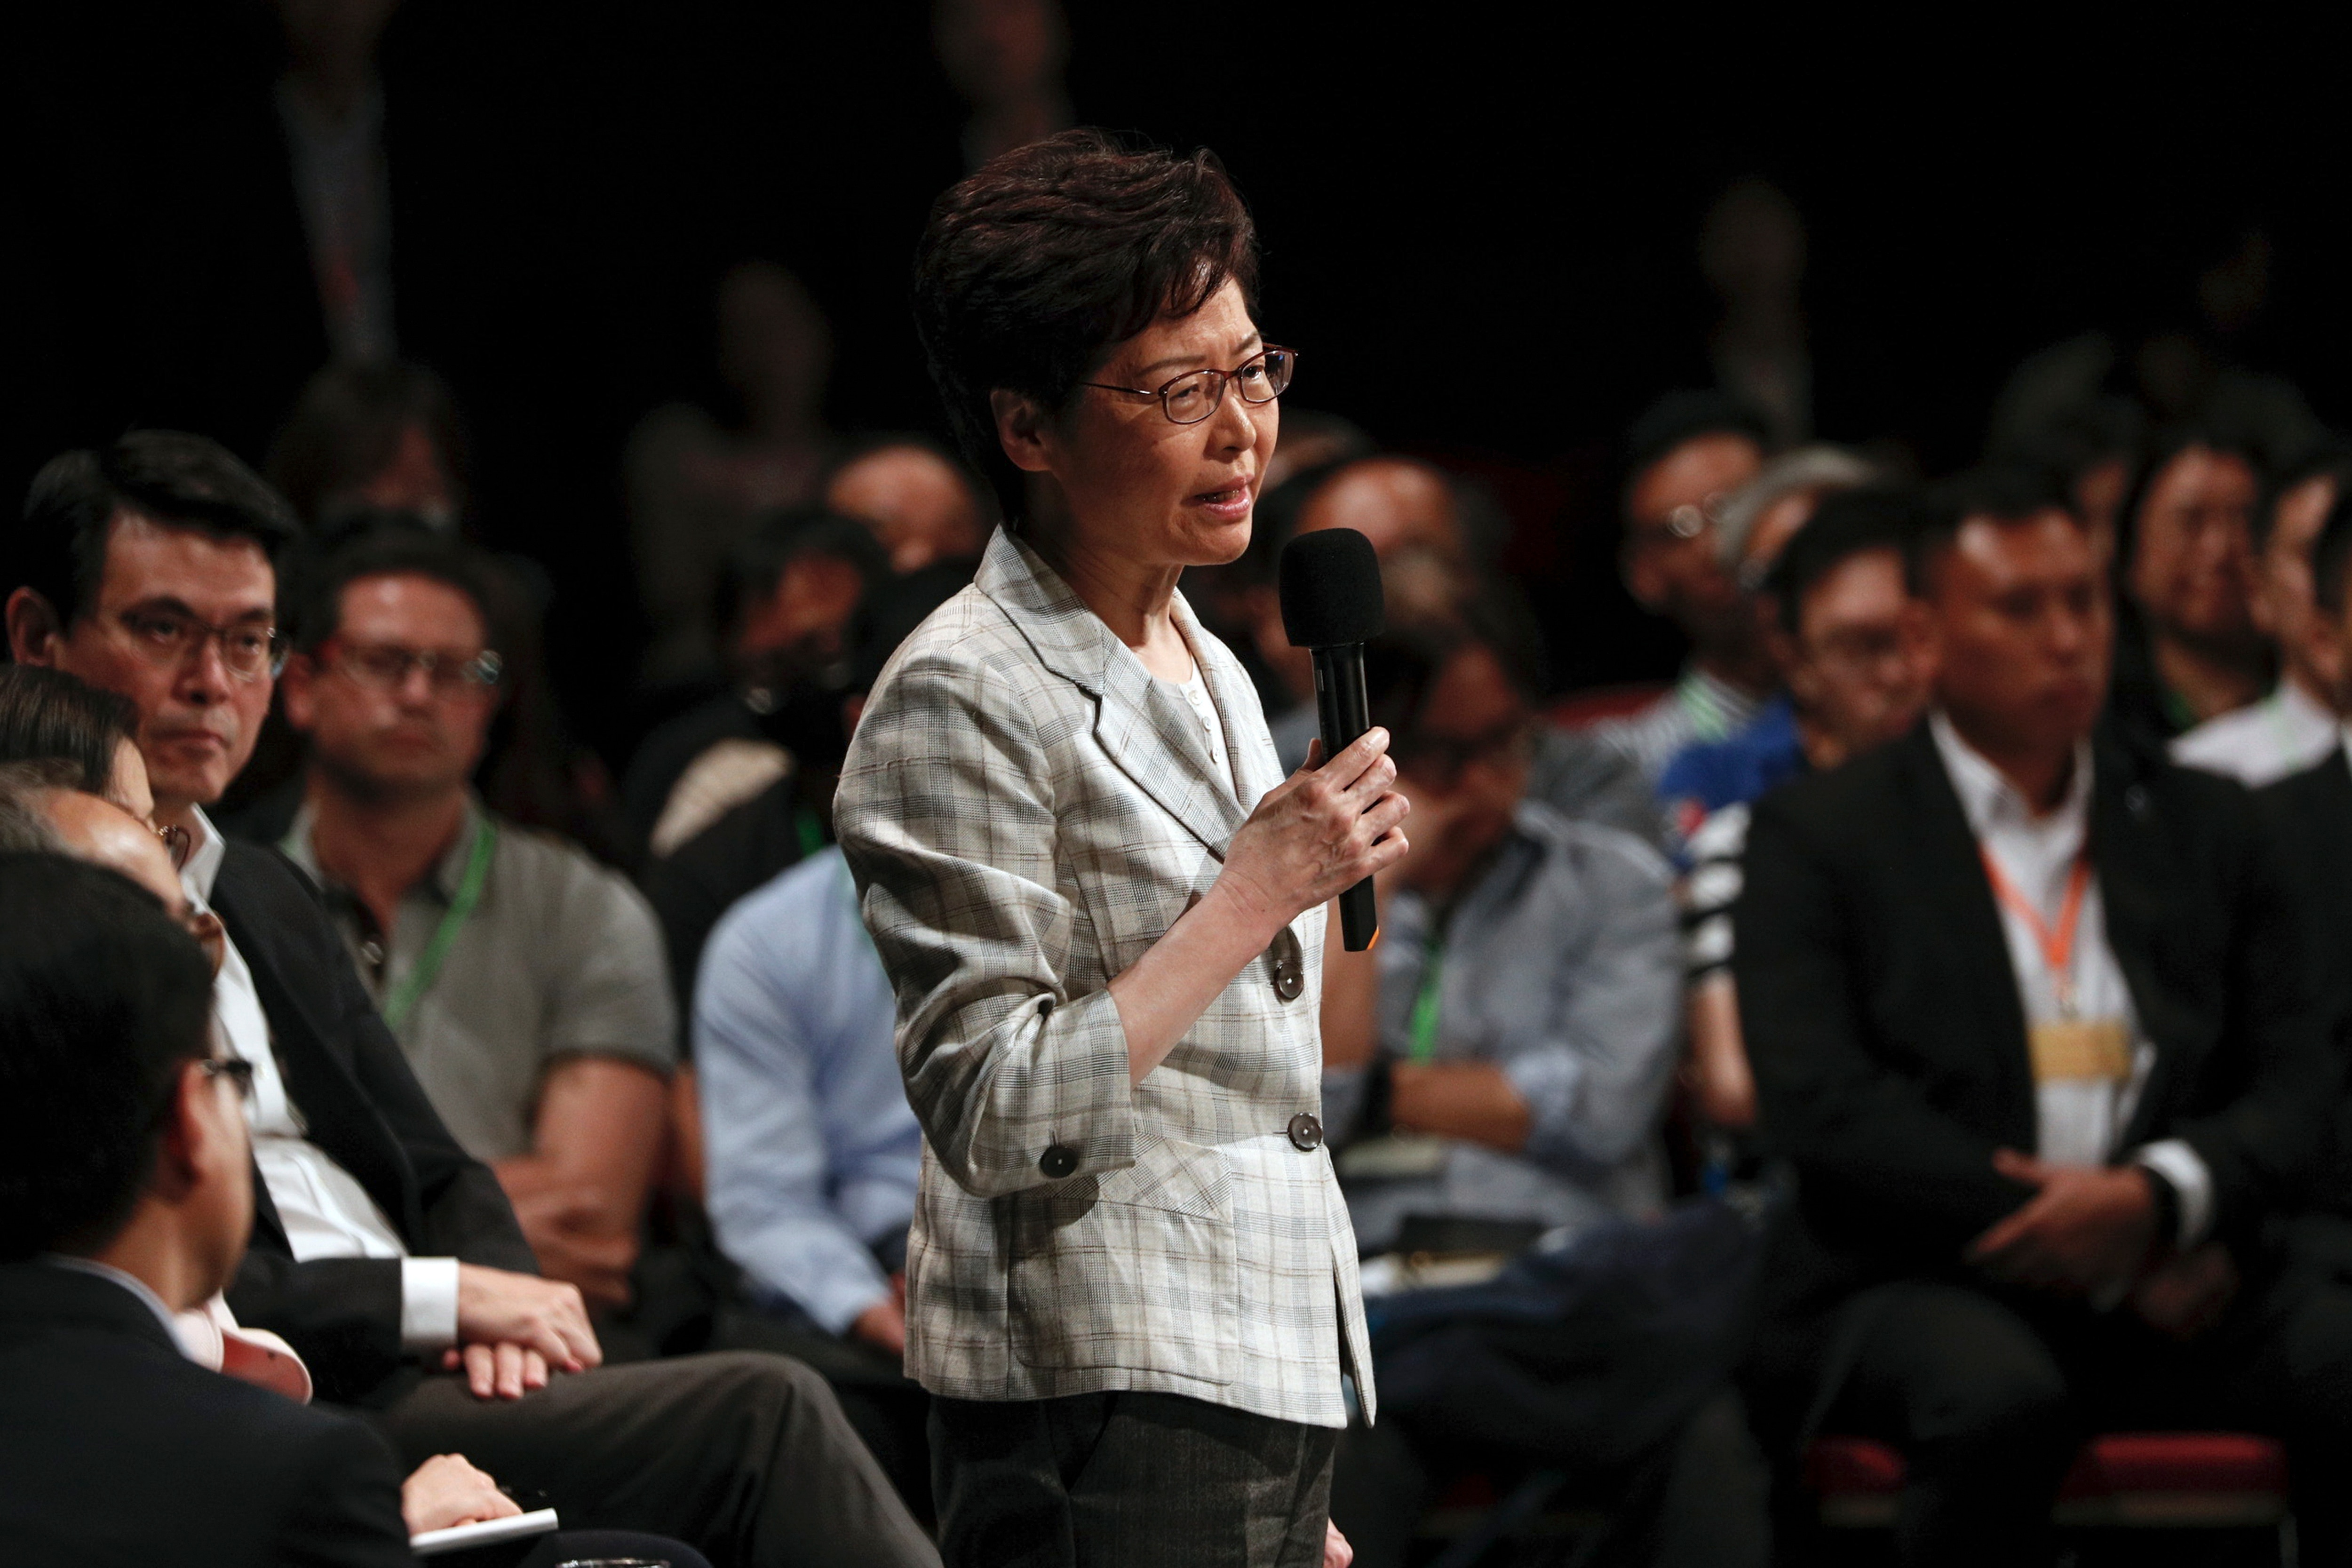 Hong Kong Chief Executive Carrie Lam speaks during a community dialogue at the Queen Elizabeth Stadium in Hong Kong.